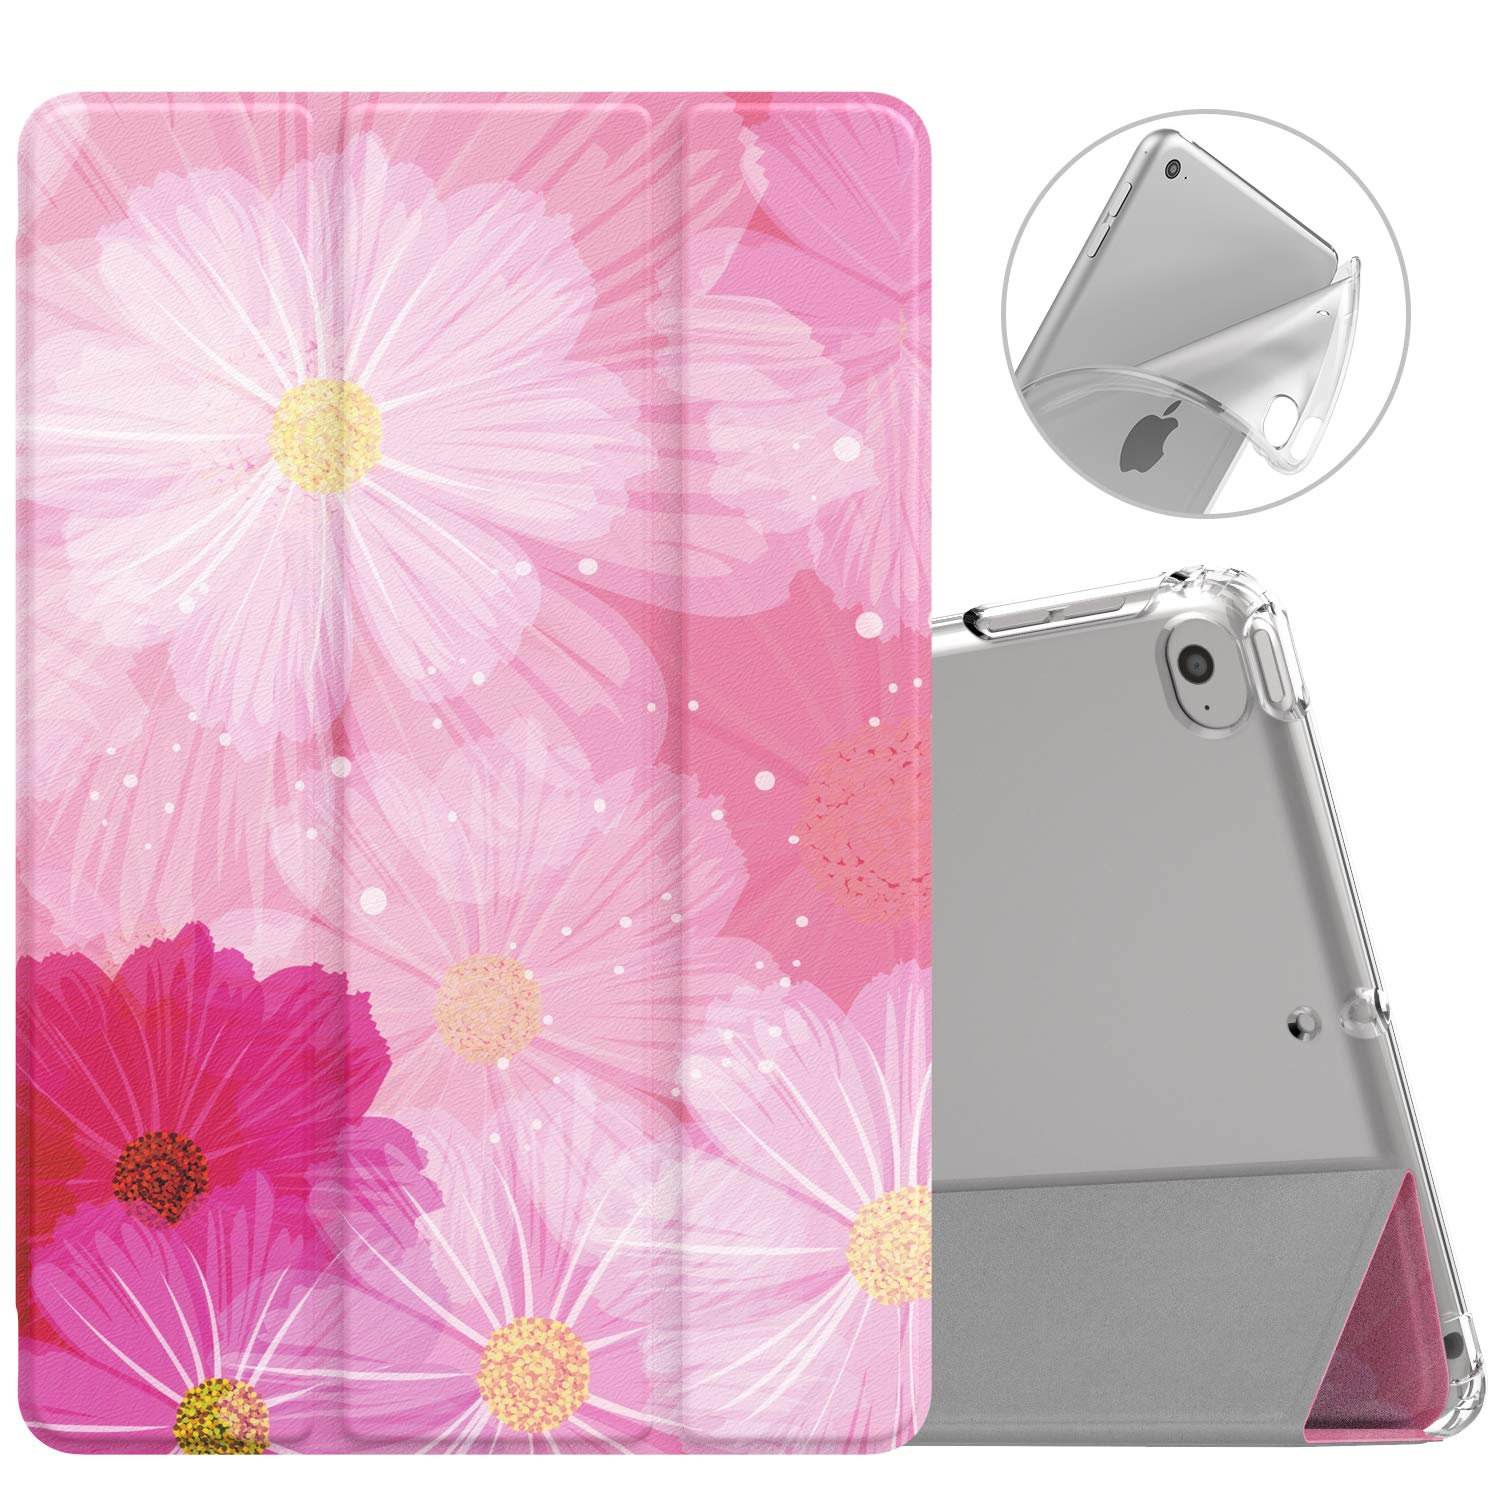 MoKo Case Fit New iPad Mini 5 2019 (5th Generation 7.9 inch), Slim Smart Shell Stand Folio Case with Soft TPU Translucent Frosted Back Cover, Auto Wake/Sleep - Coreopsis